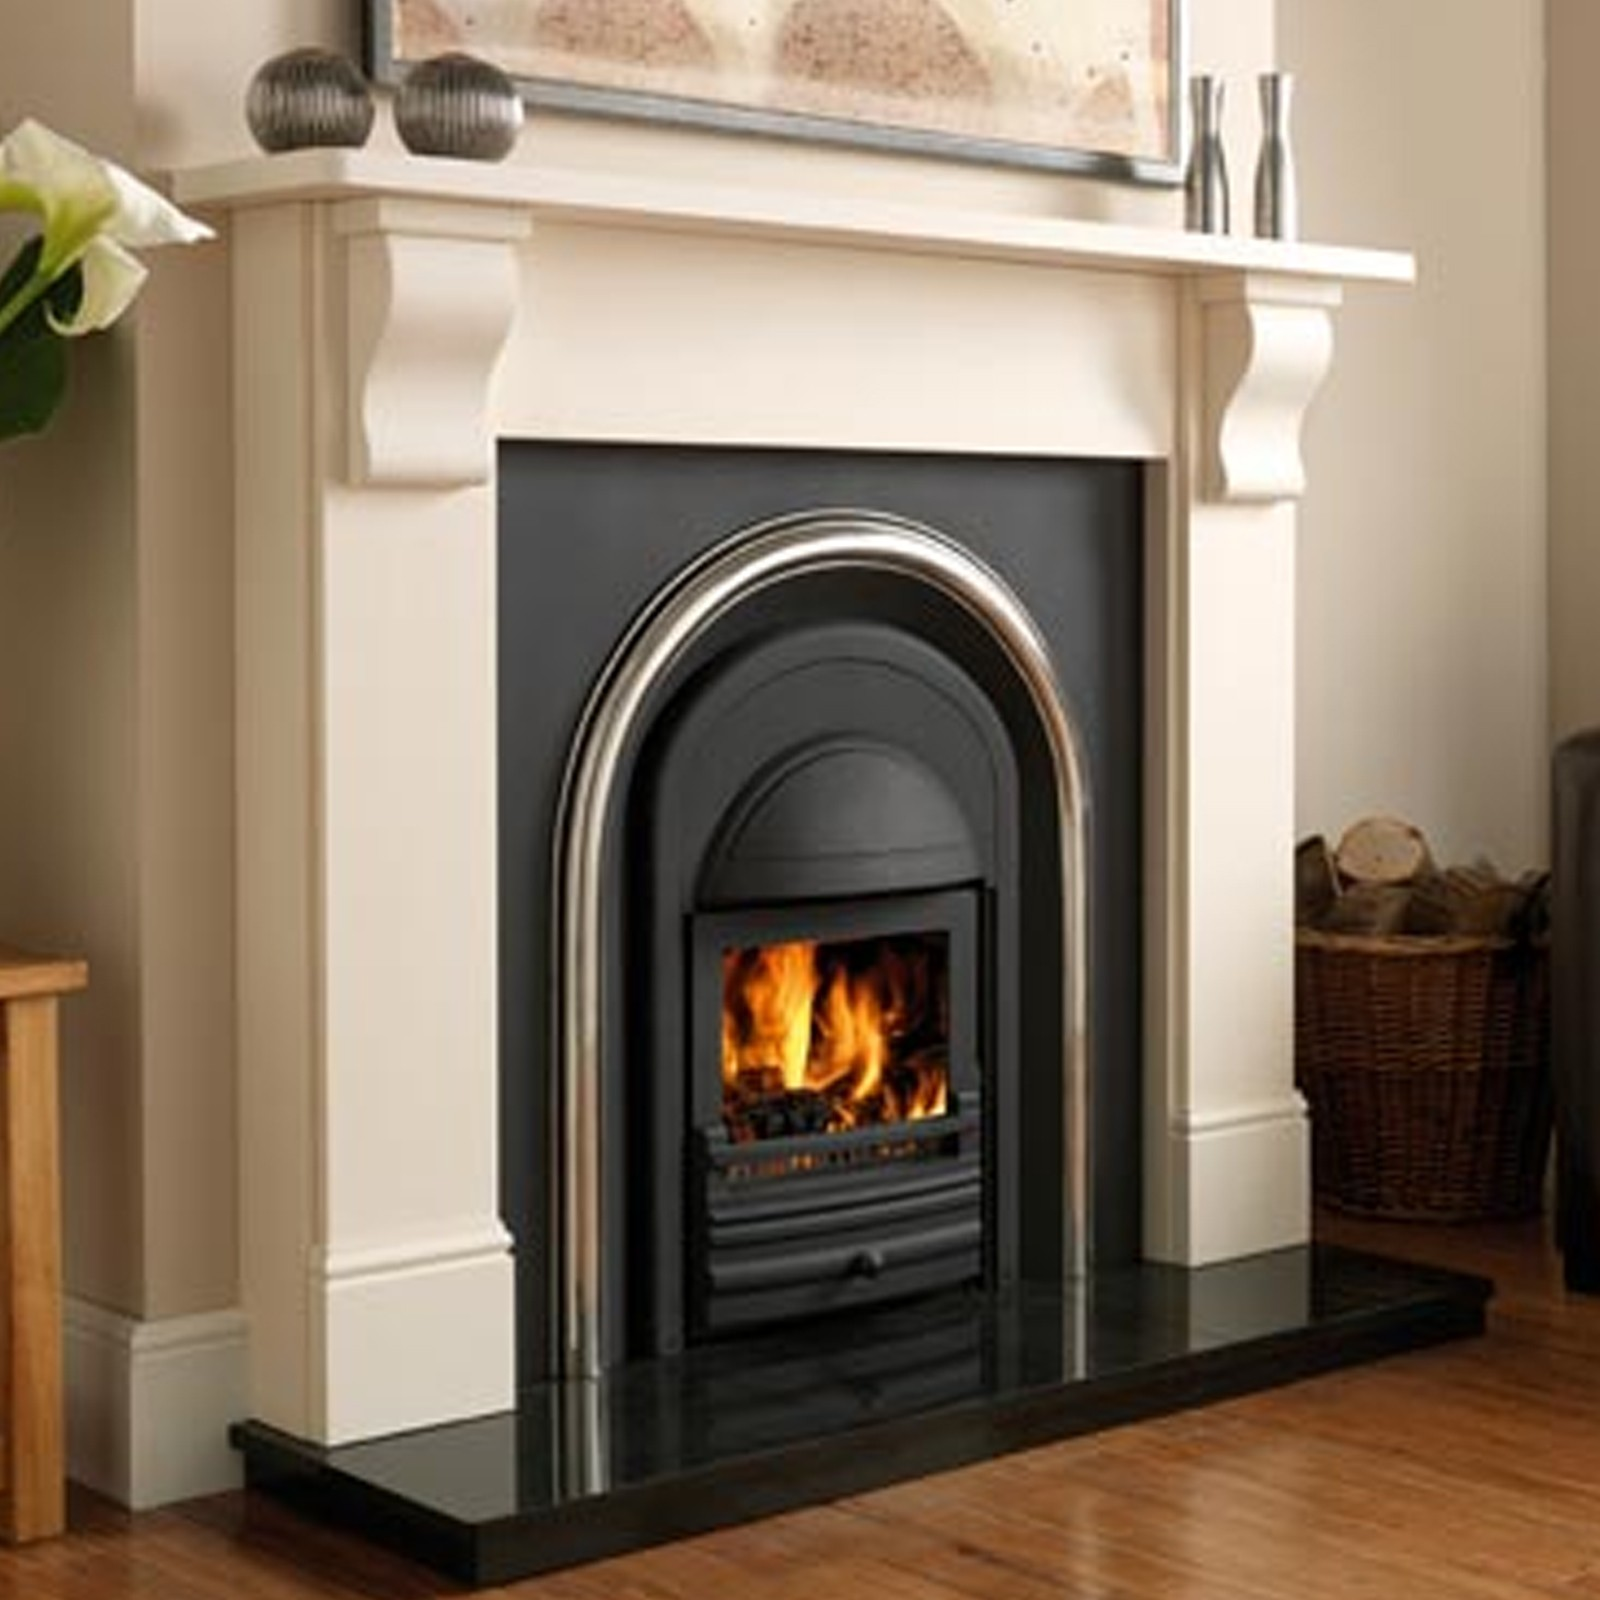 Solid Fuel Glass Fronted Fireplaces London Amp Wimbledon